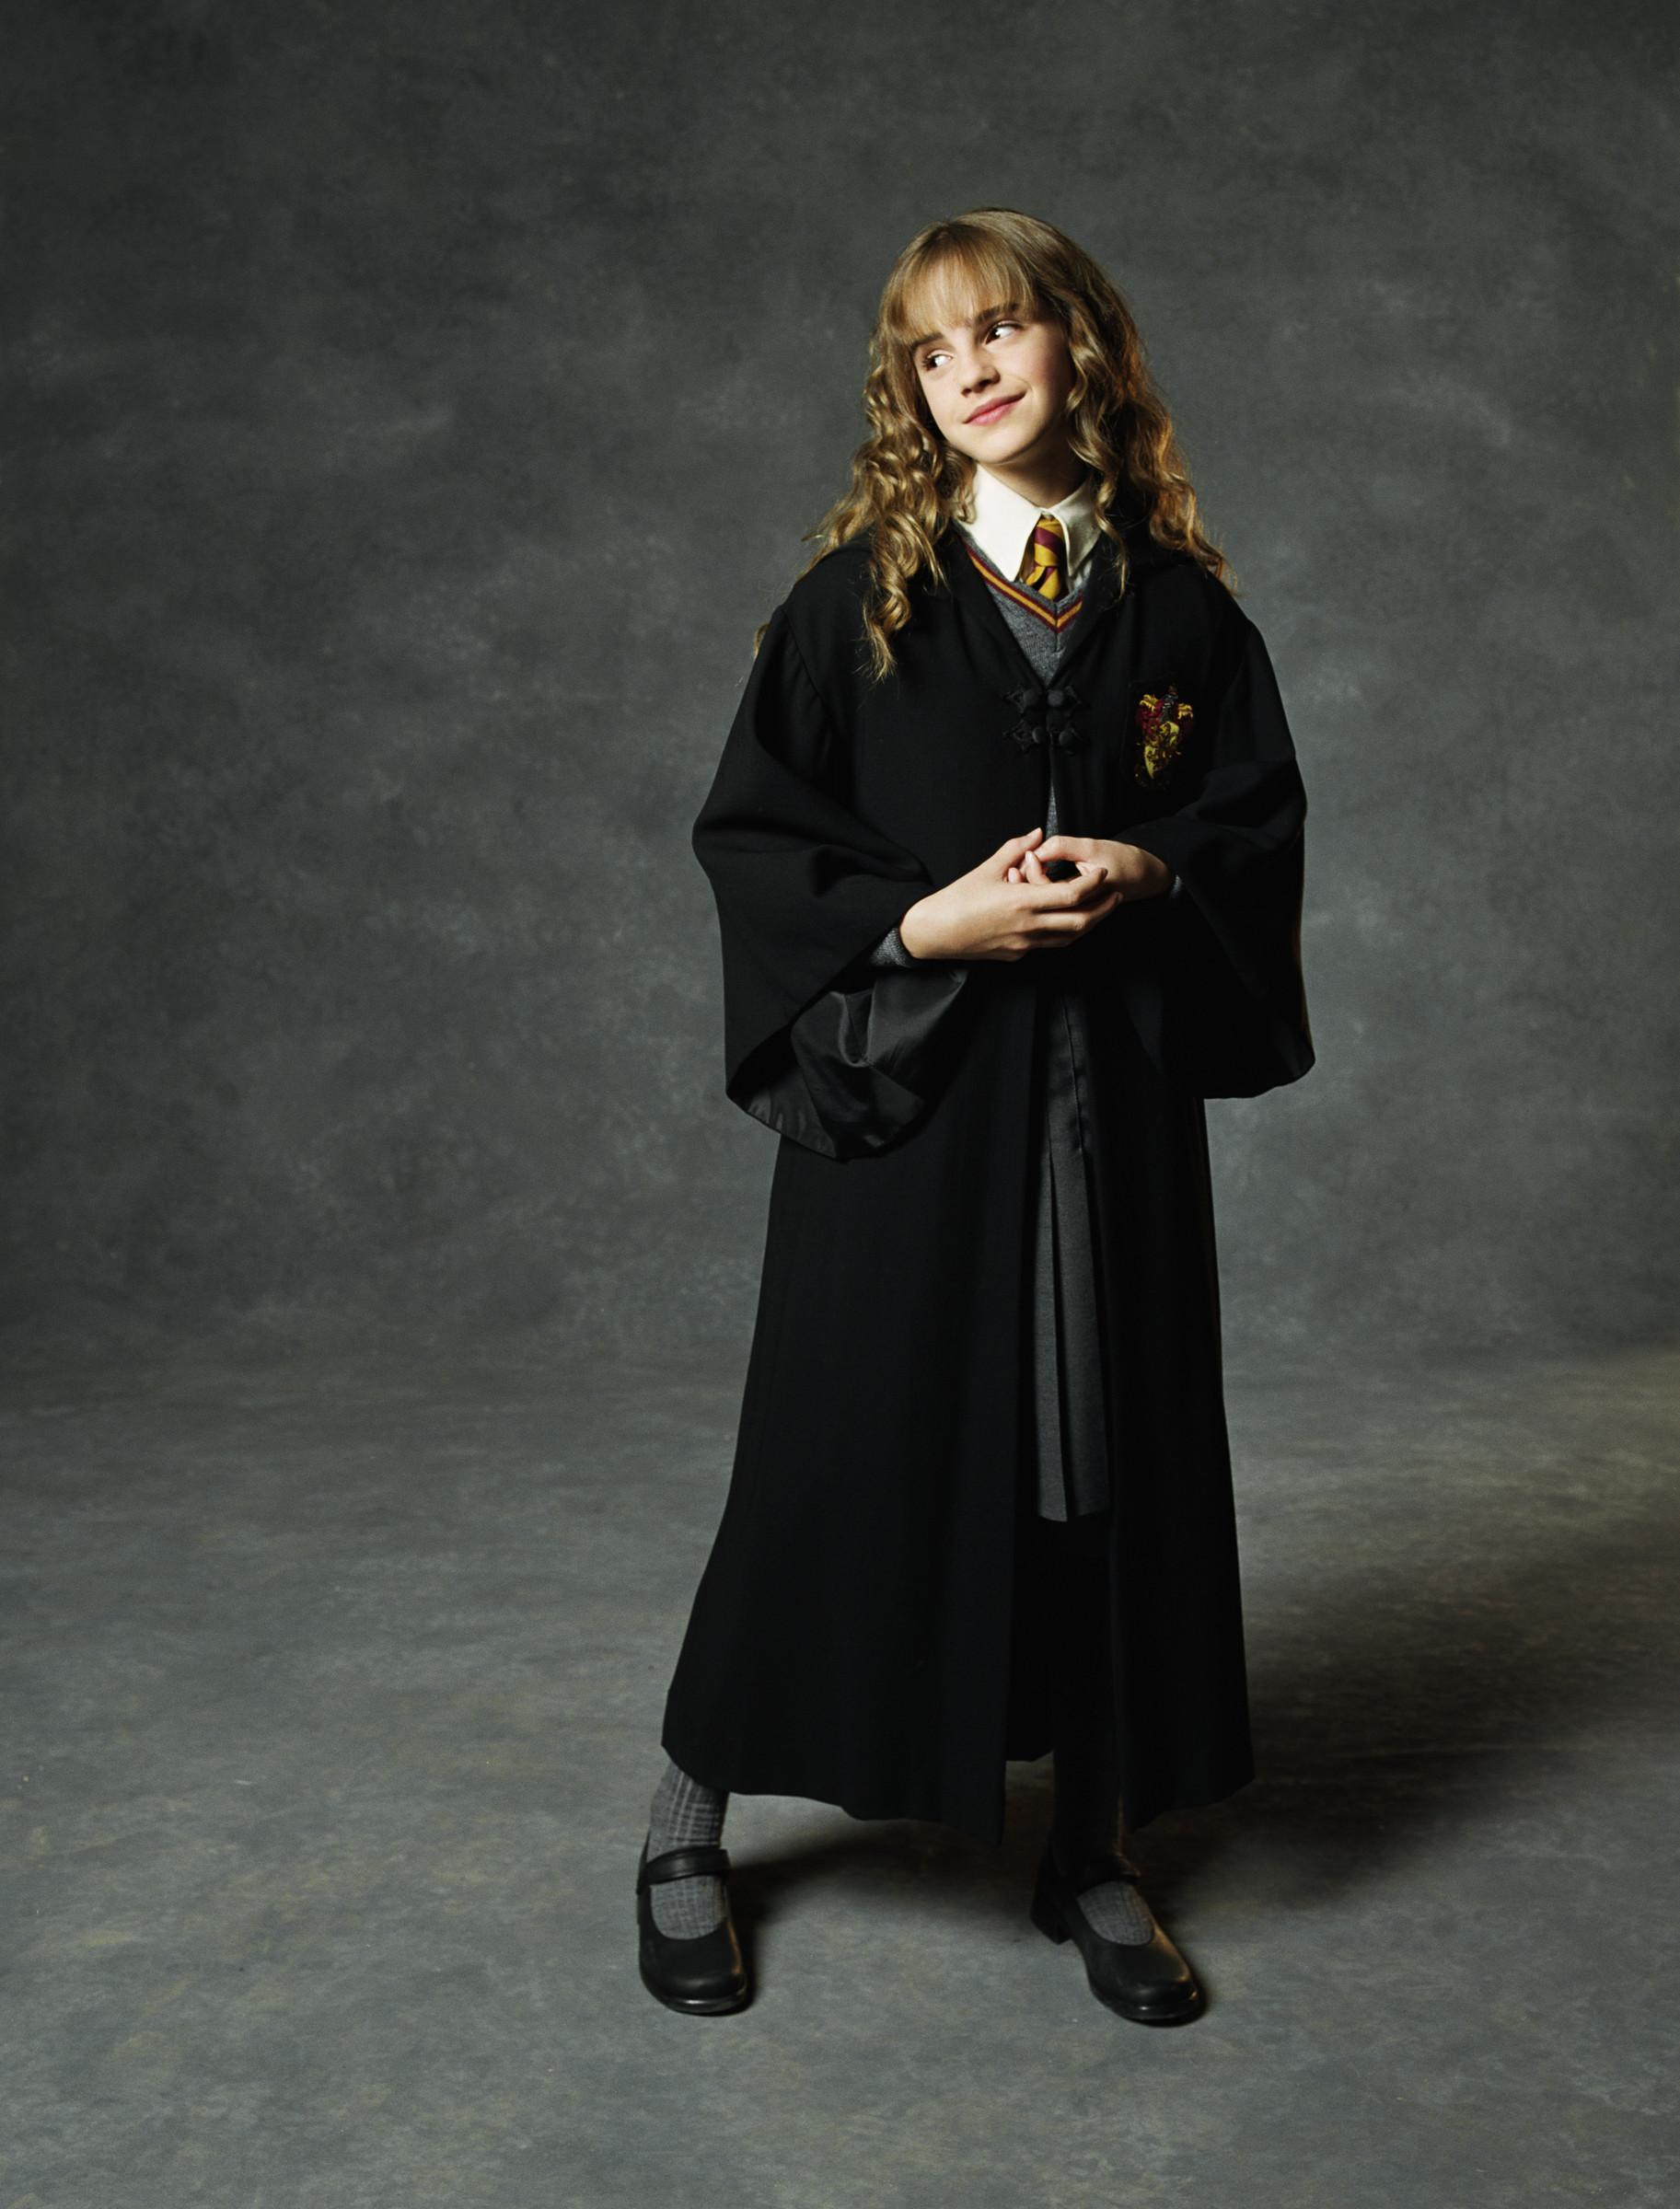 emma watson harry potter and the chamber of secrets images emma watson harry potter and the chamber of secrets